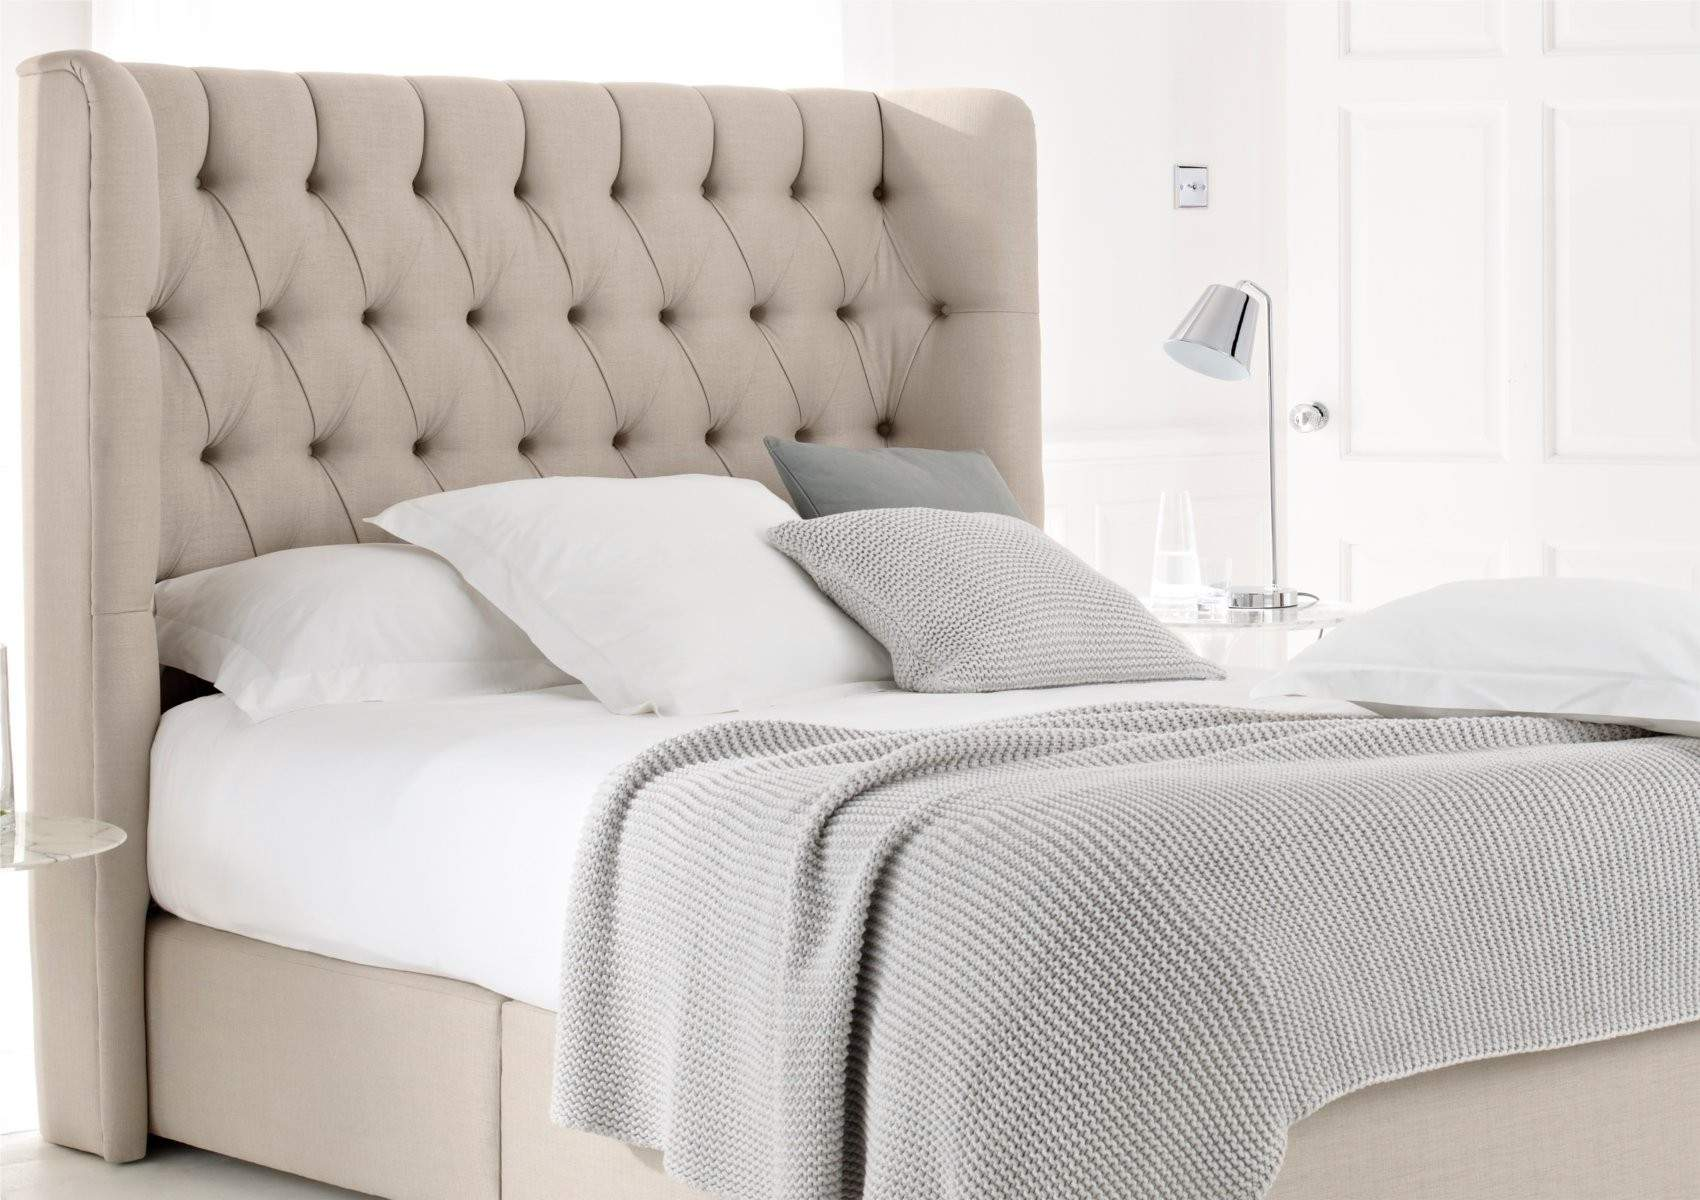 Excellent Bed Backboard Pics Ideas Golime